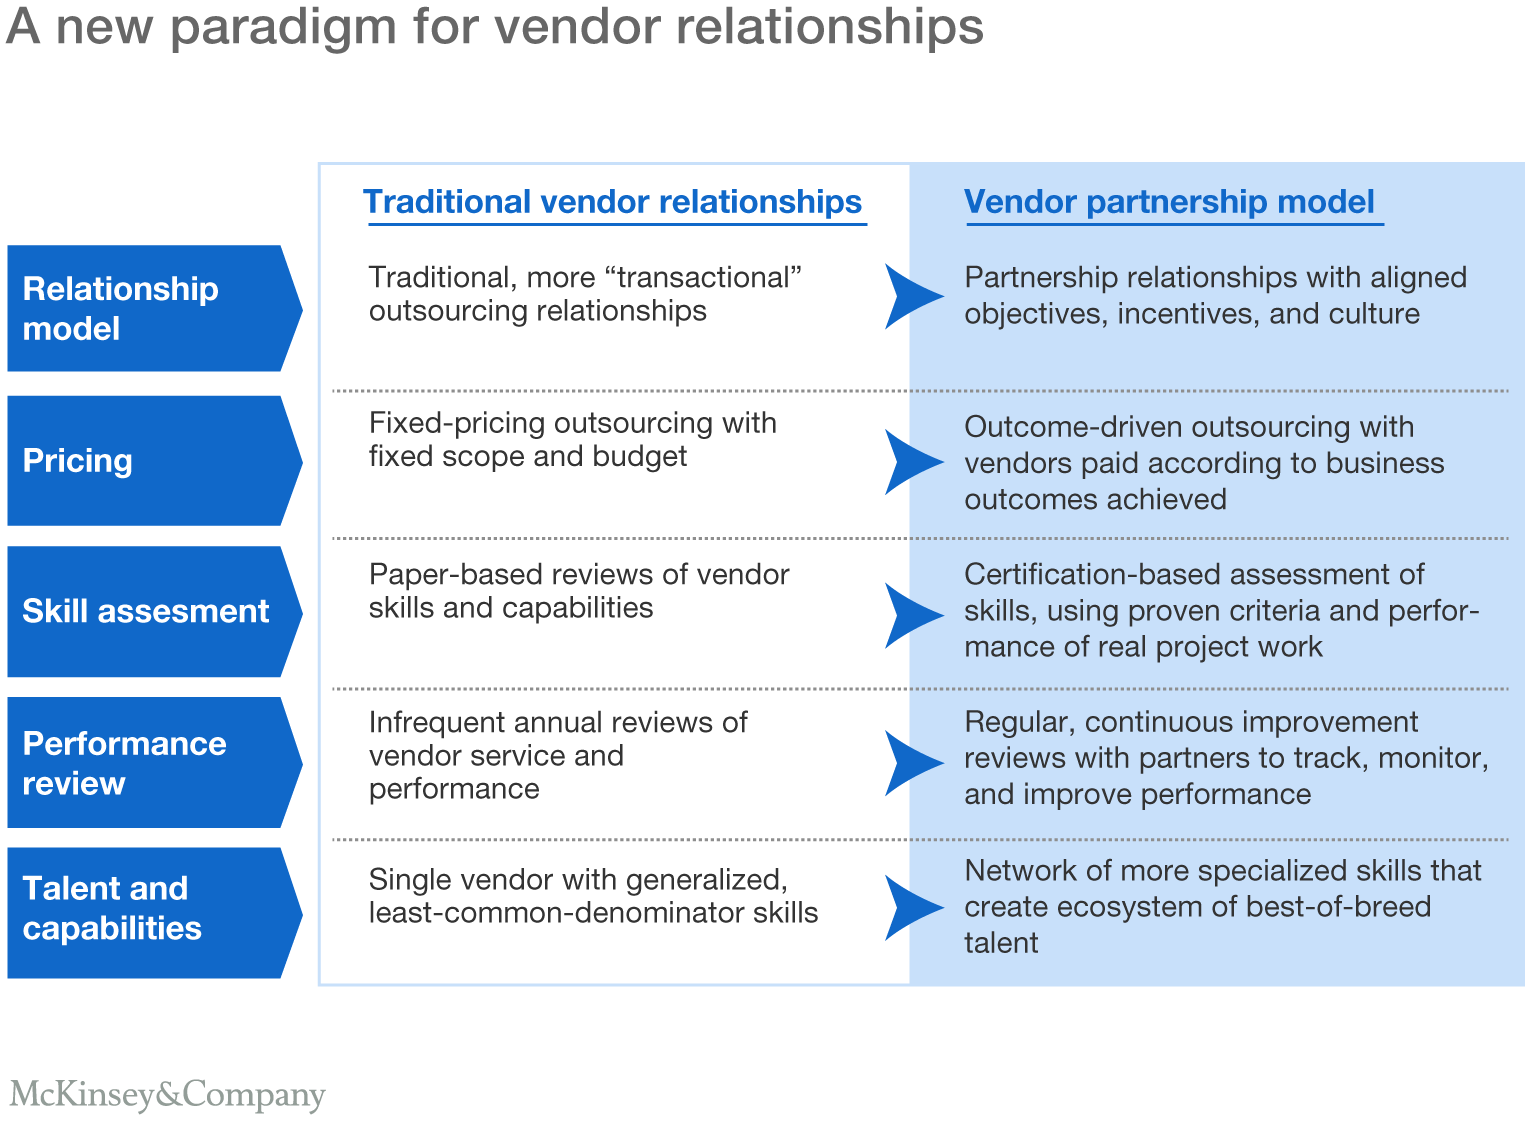 A new paradigm for vendor relationships